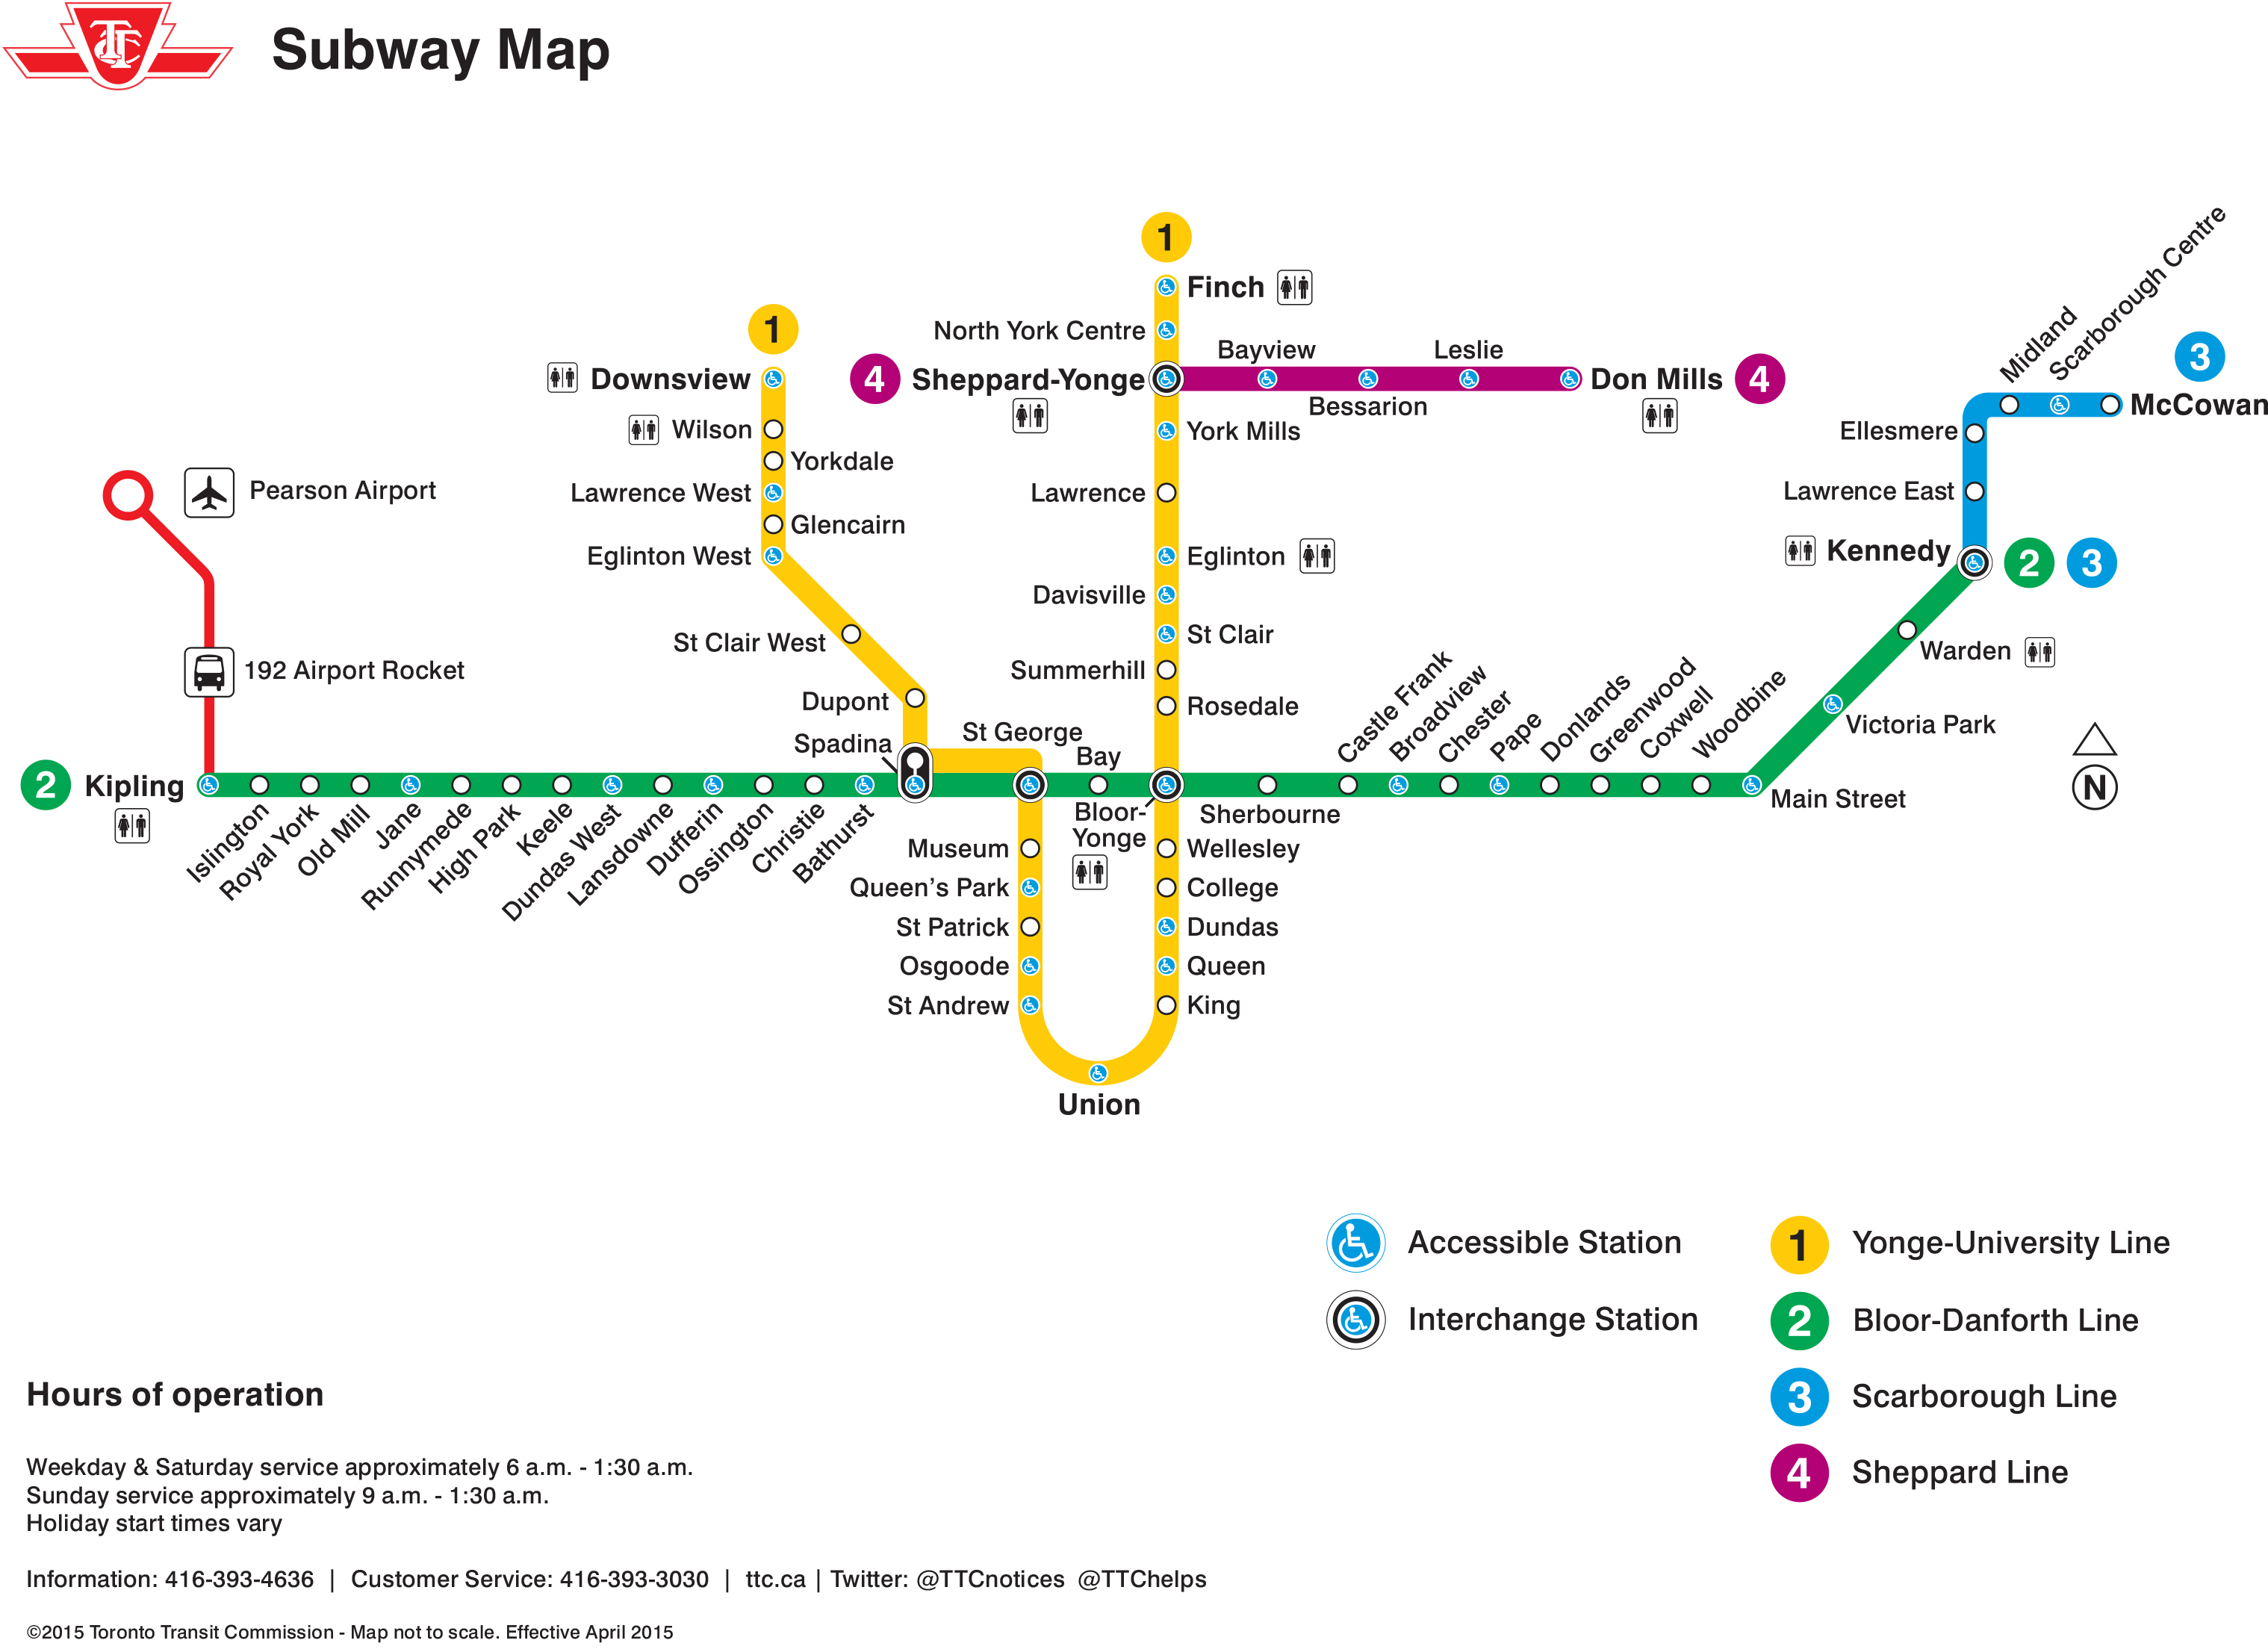 Toronto Subway System Map, 2015